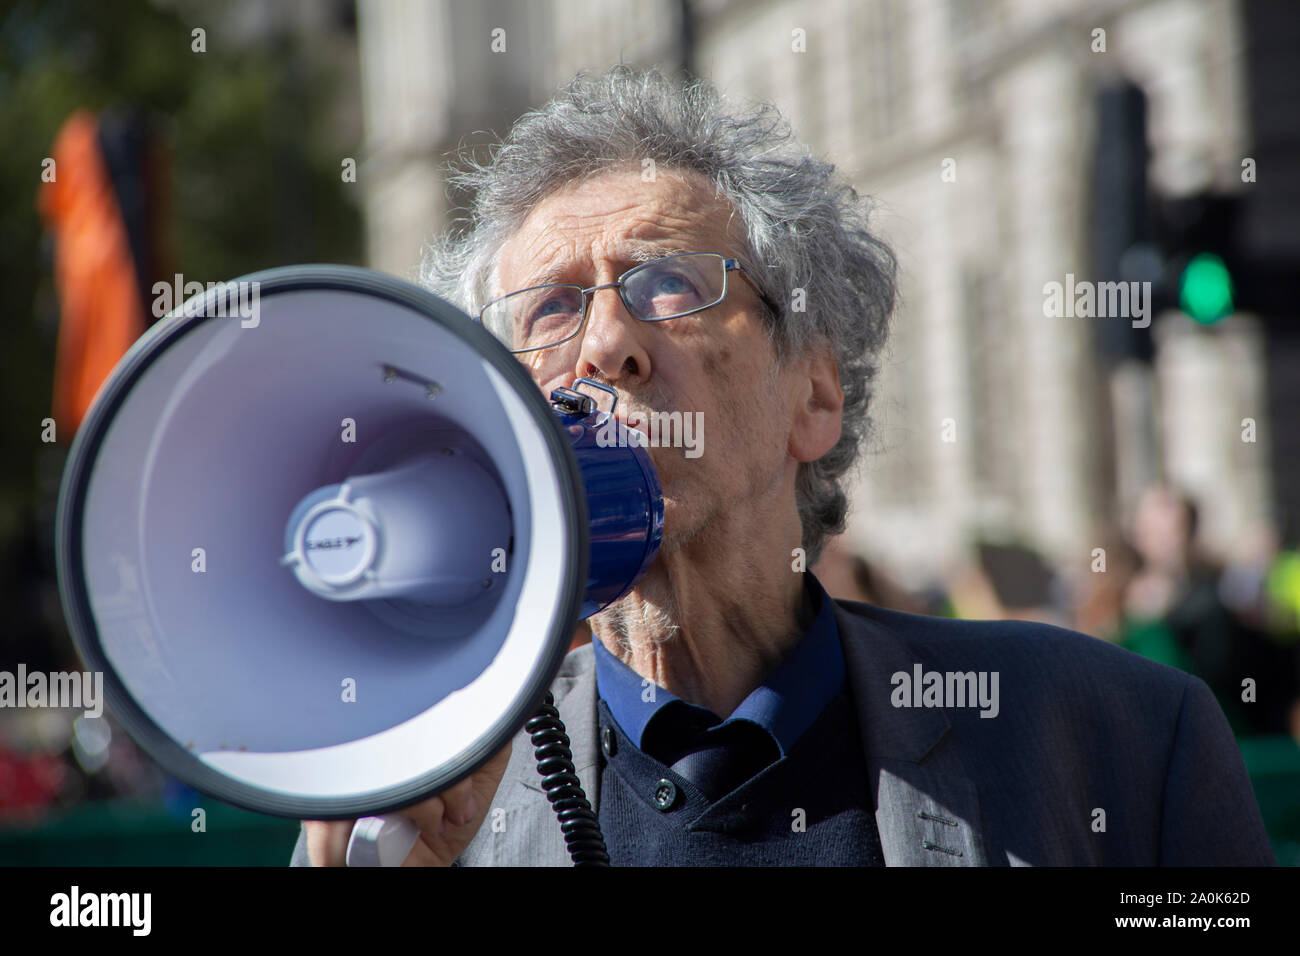 Westminster, London UK. 20 September 2019. Global Climate Strike Protest: Piers Corbyn, brother of Labour leader Jeremy Corbyn MP outside Parliament. Stock Photo